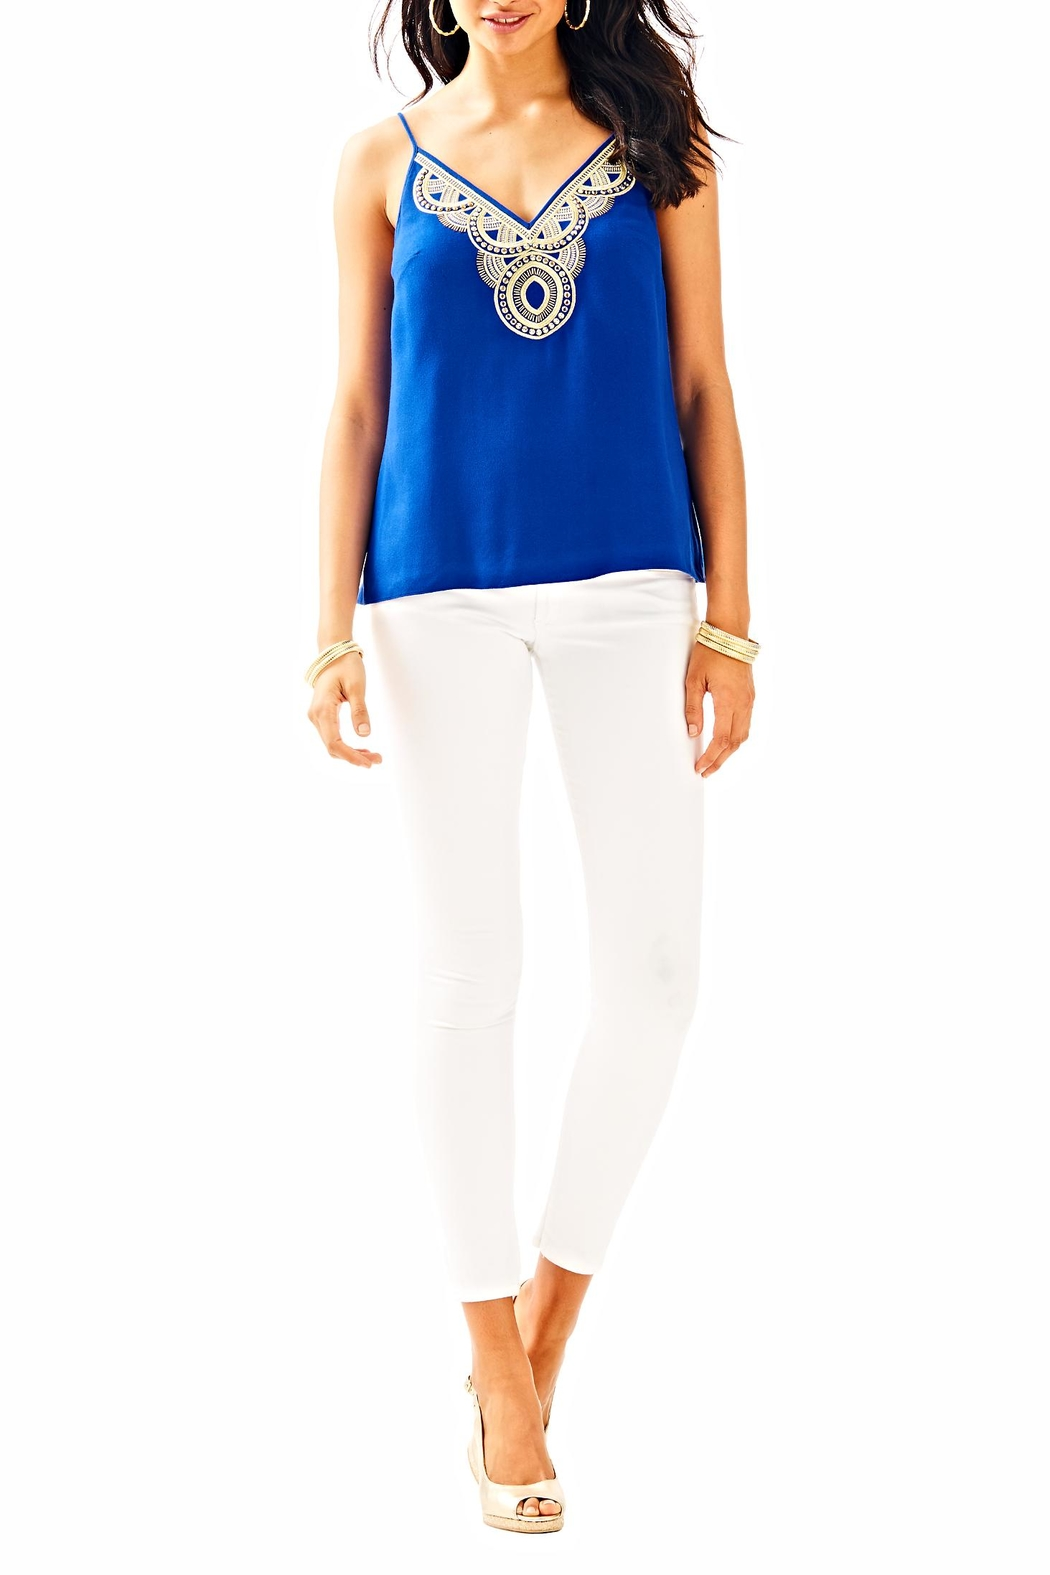 Lilly Pulitzer Lela Top - Side Cropped Image